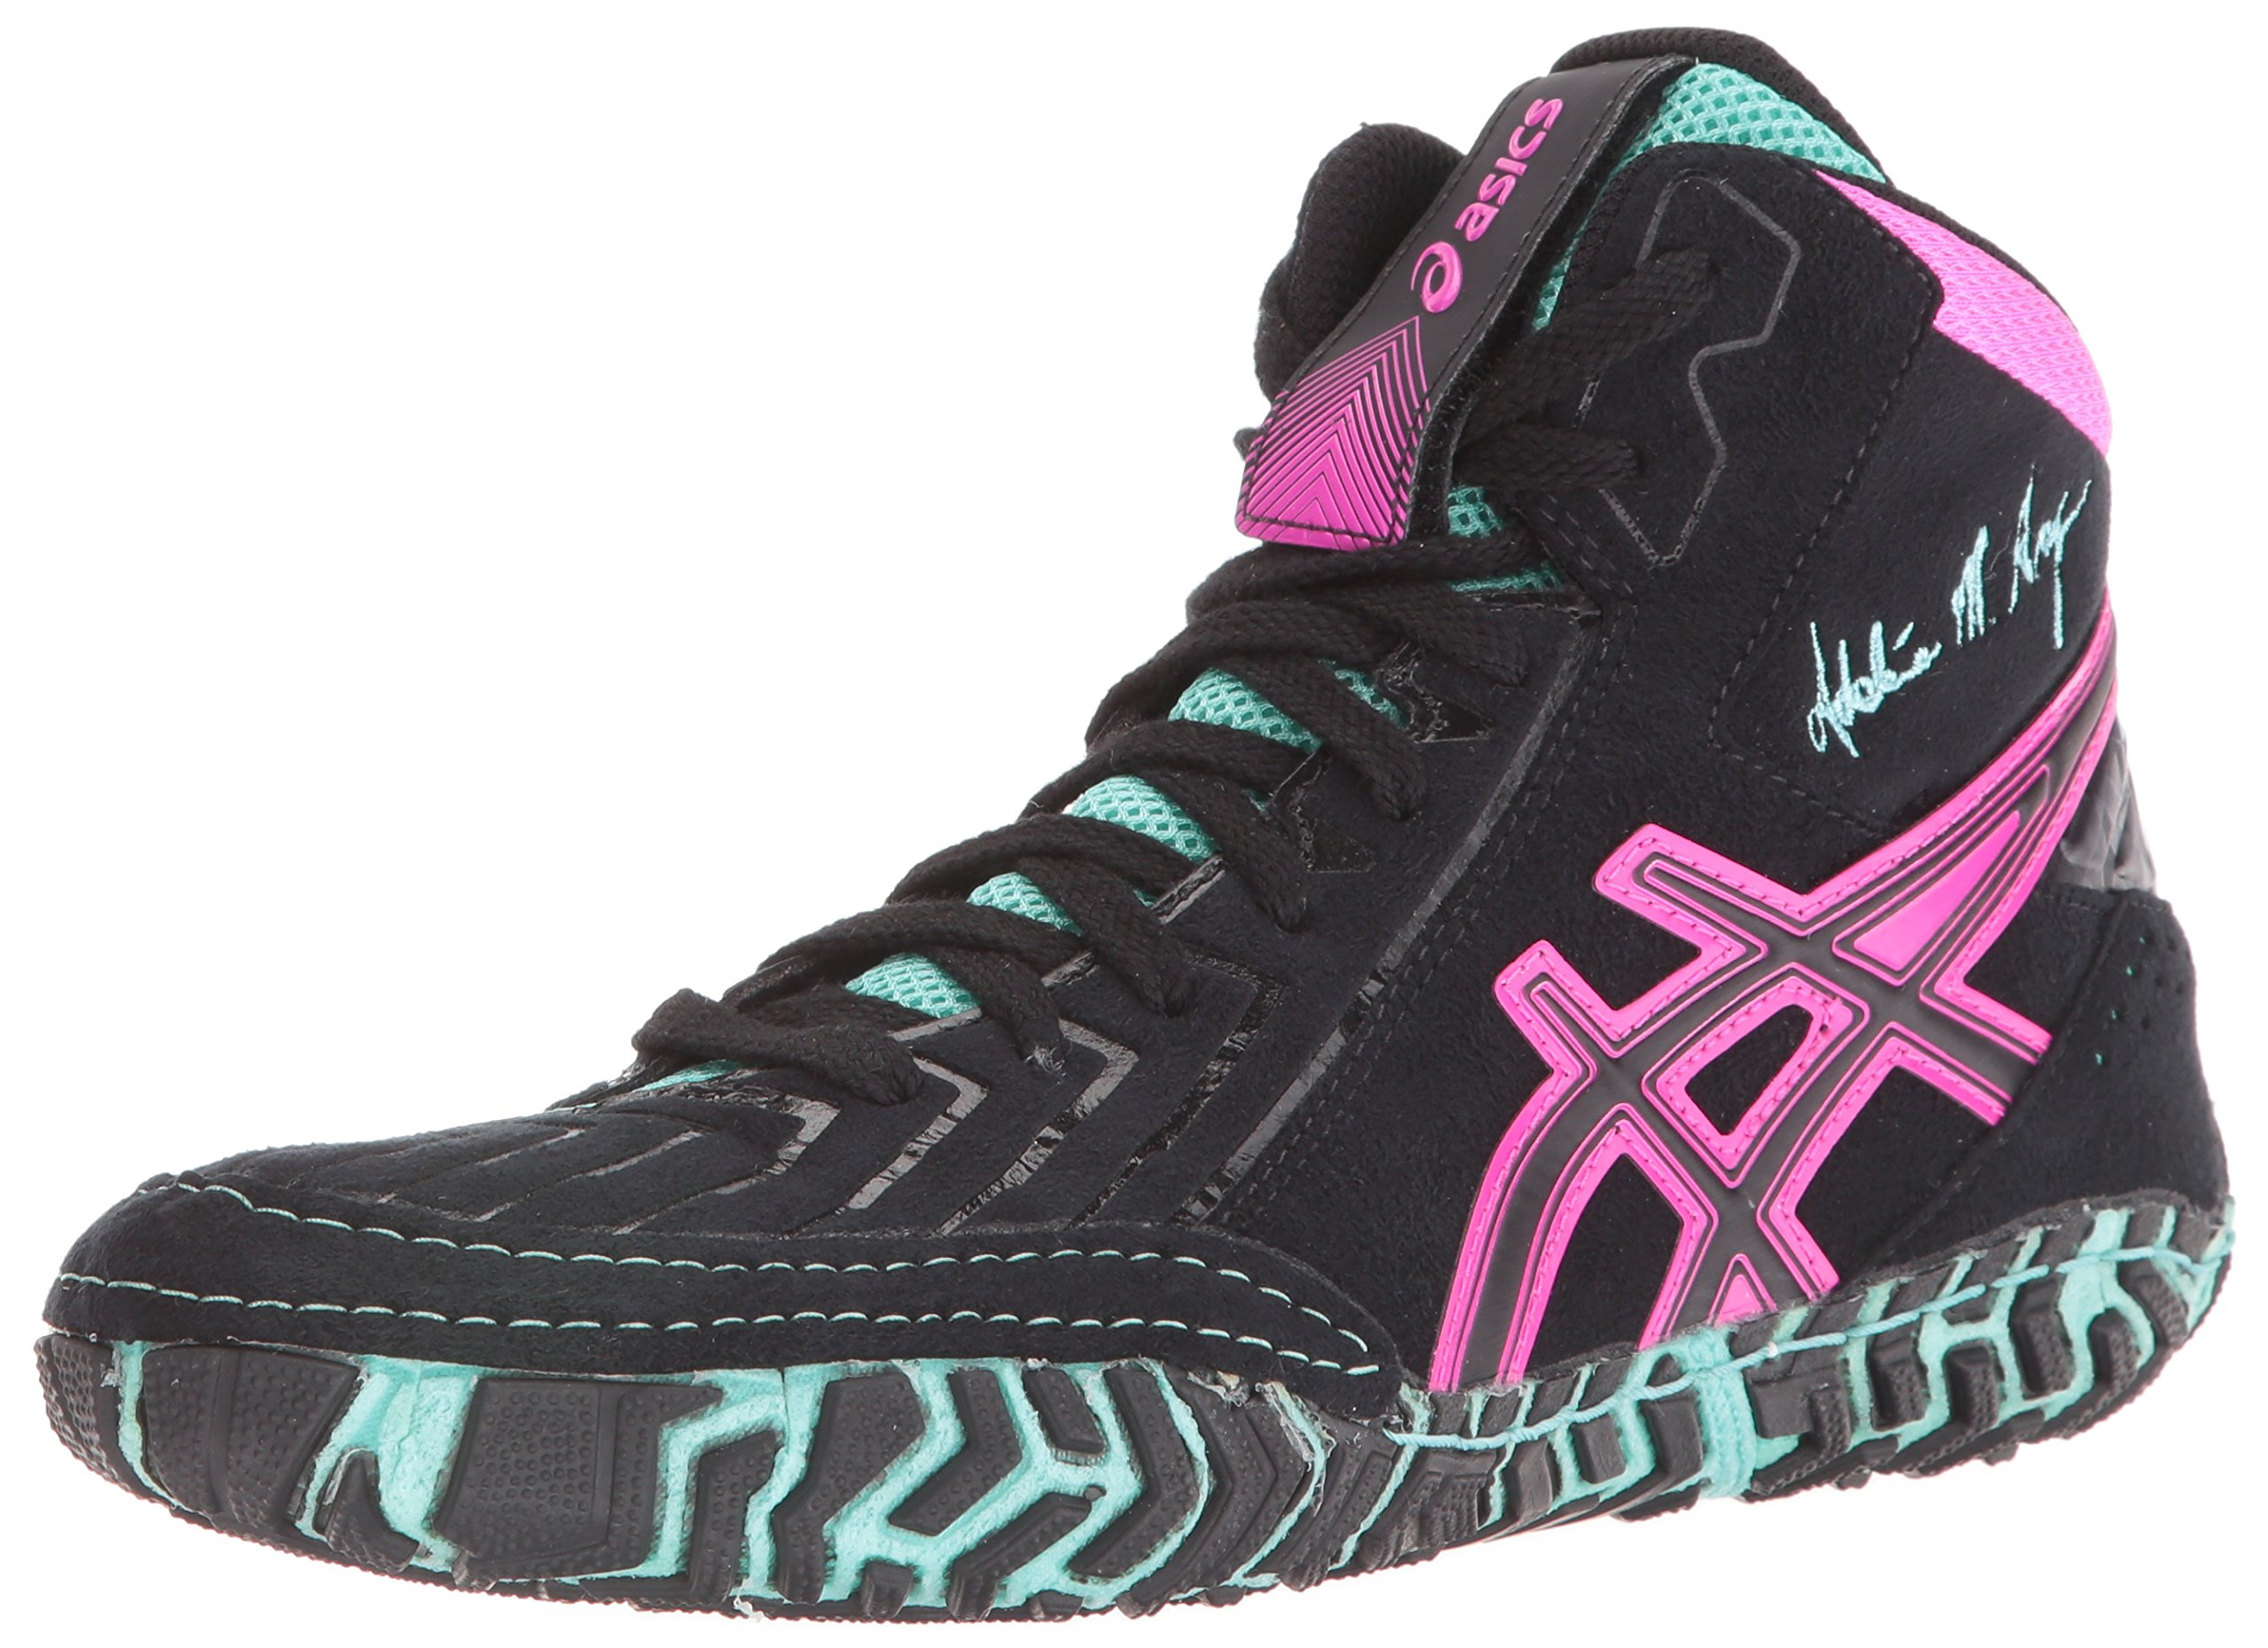 ASICS Men's Aggressor 3 L.E. AG Wrestling Shoe, Black/Onyx/Pink Glow, 6 M US by ASICS